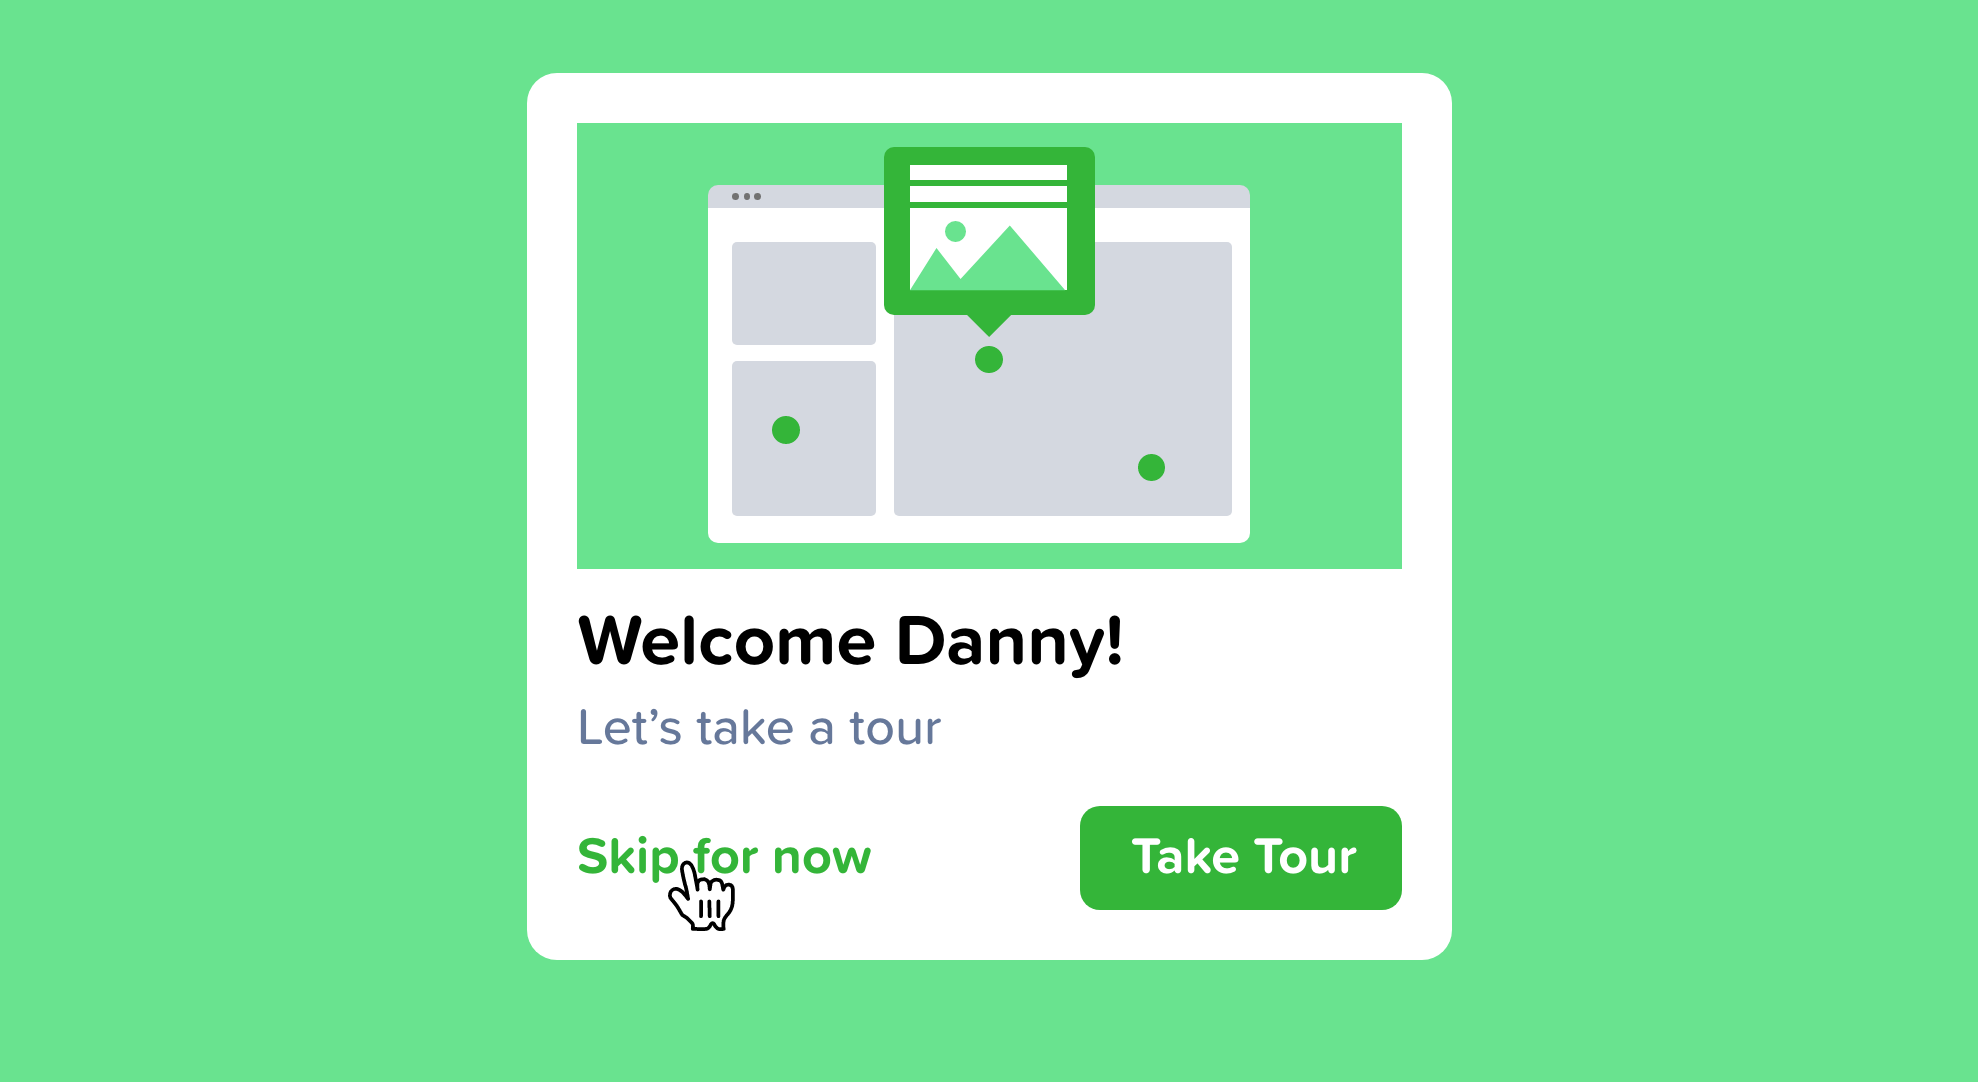 Displaying the ability to skip onboarding